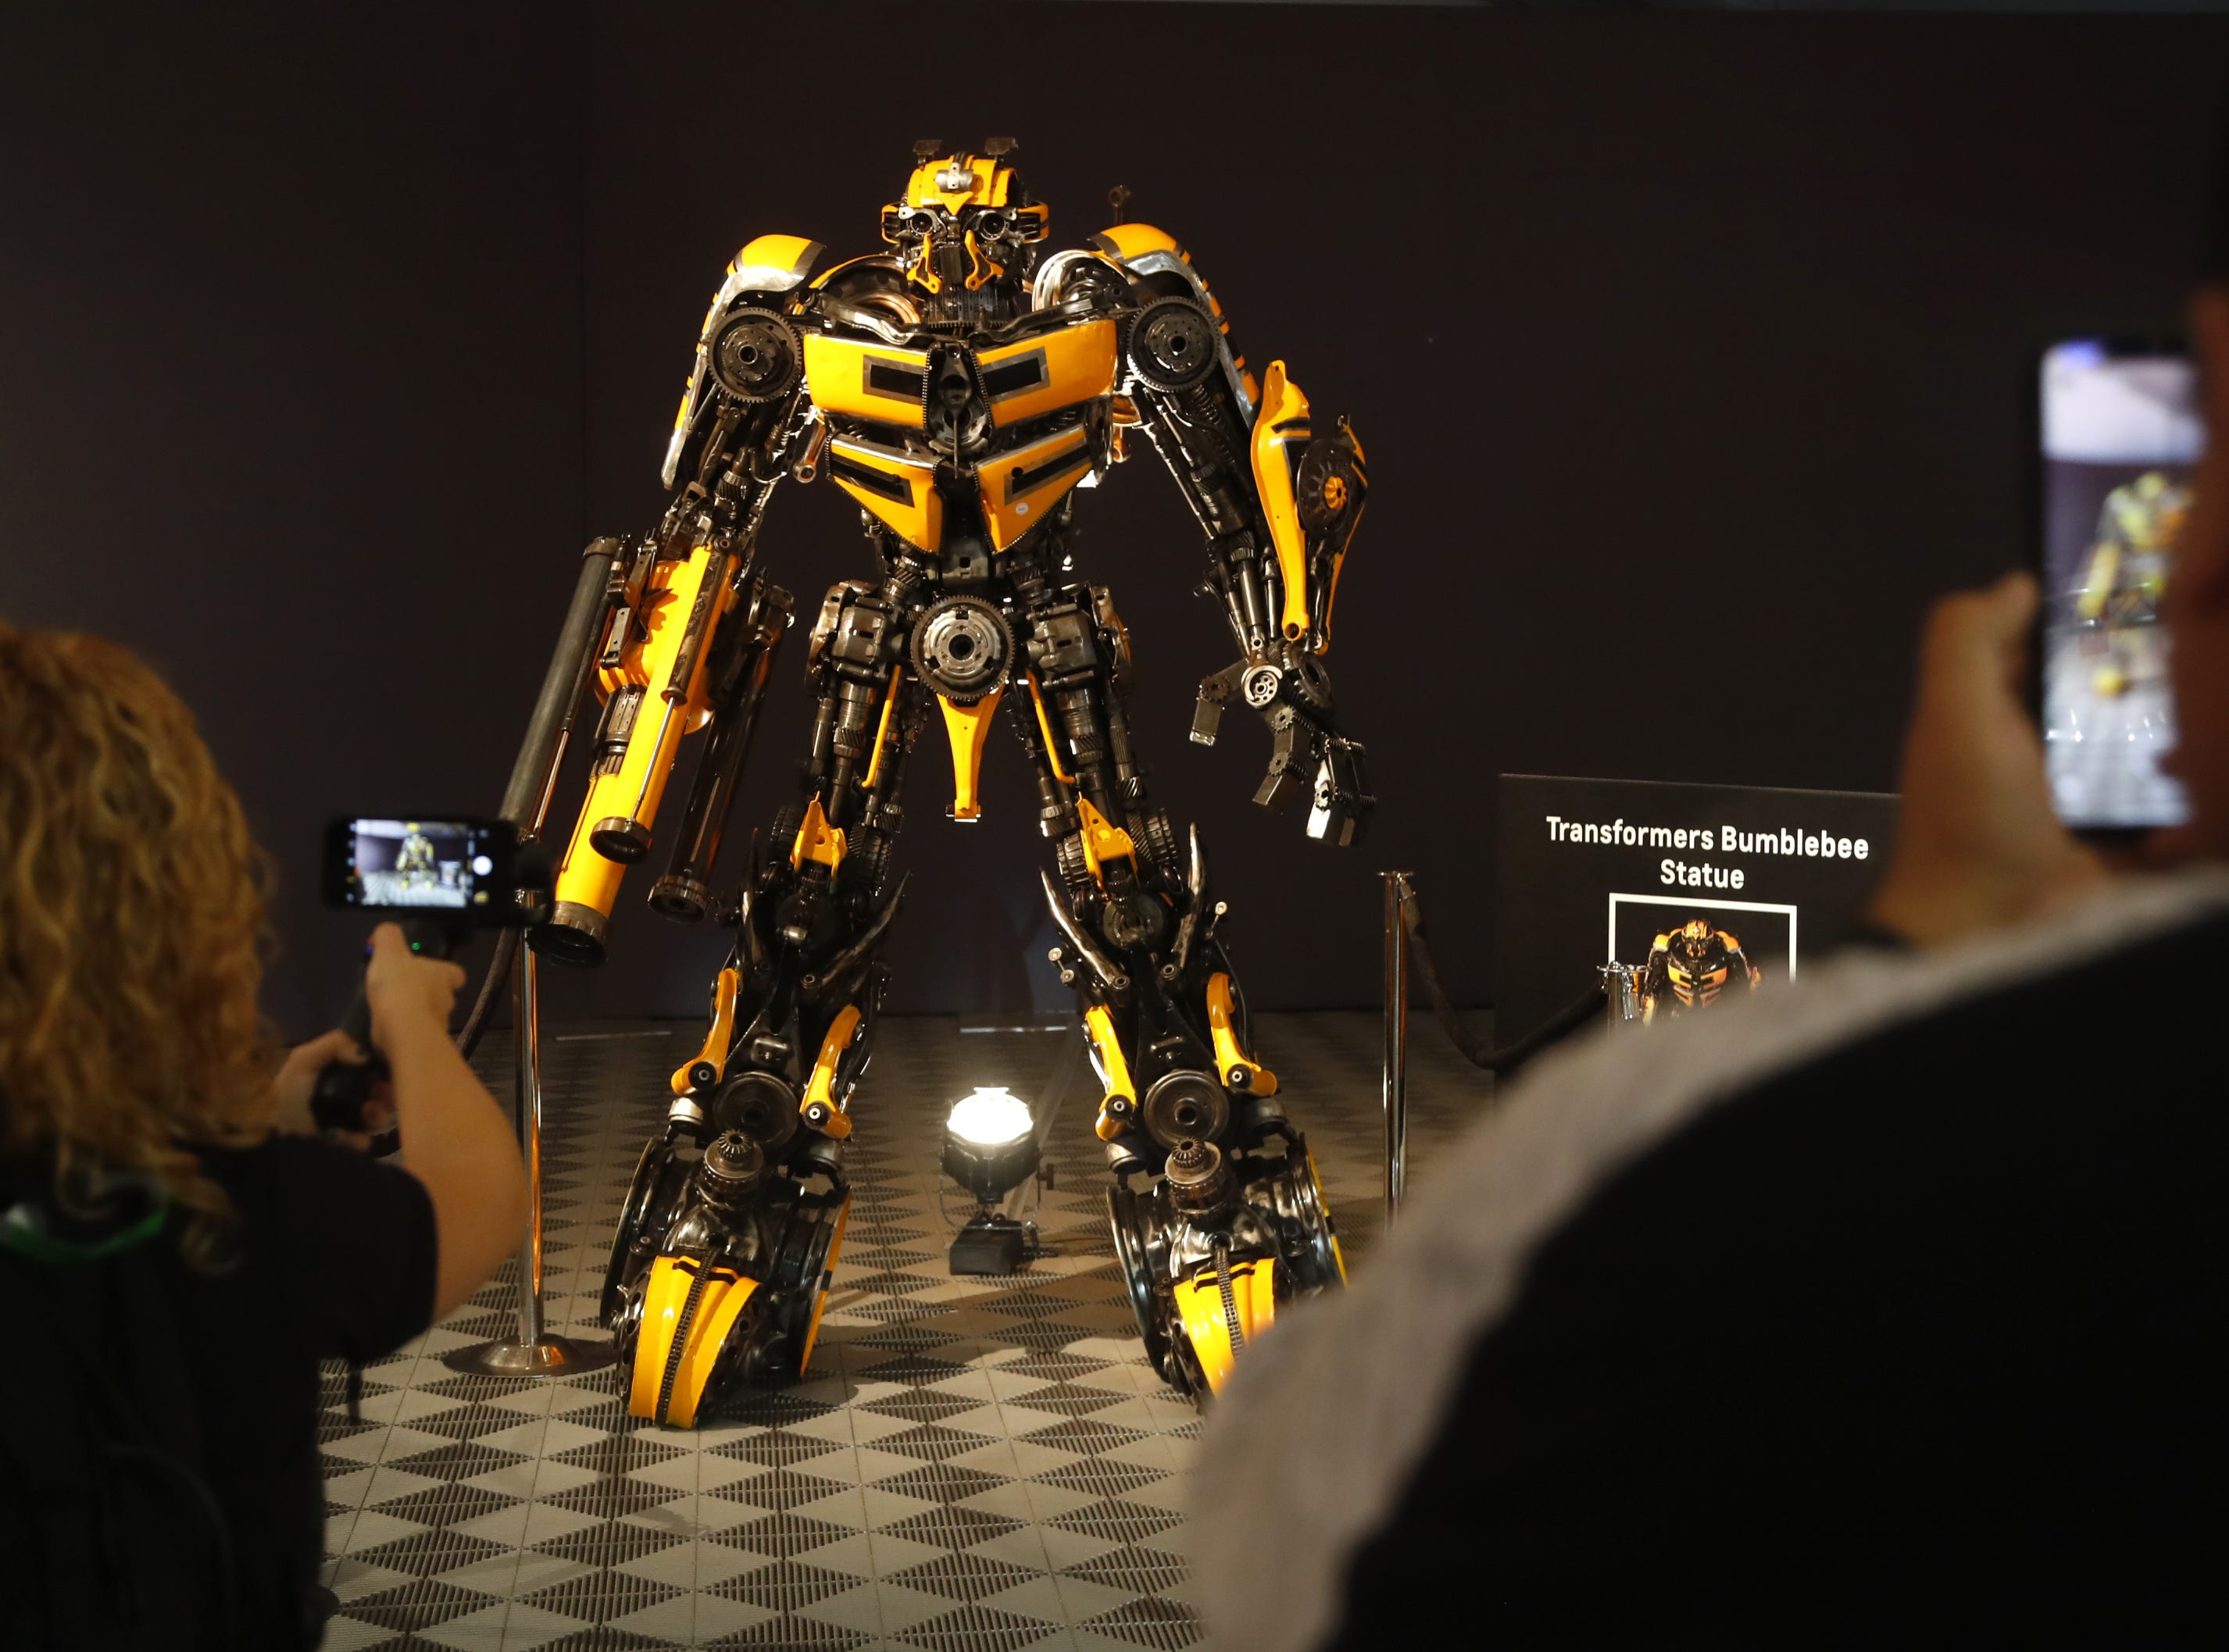 Chevrolet's Transformer character Bubblebee has its picture taken at the Barrett-Jackson Car Auction in WestWorld in Scottsdale on Jan. 14, 2019.